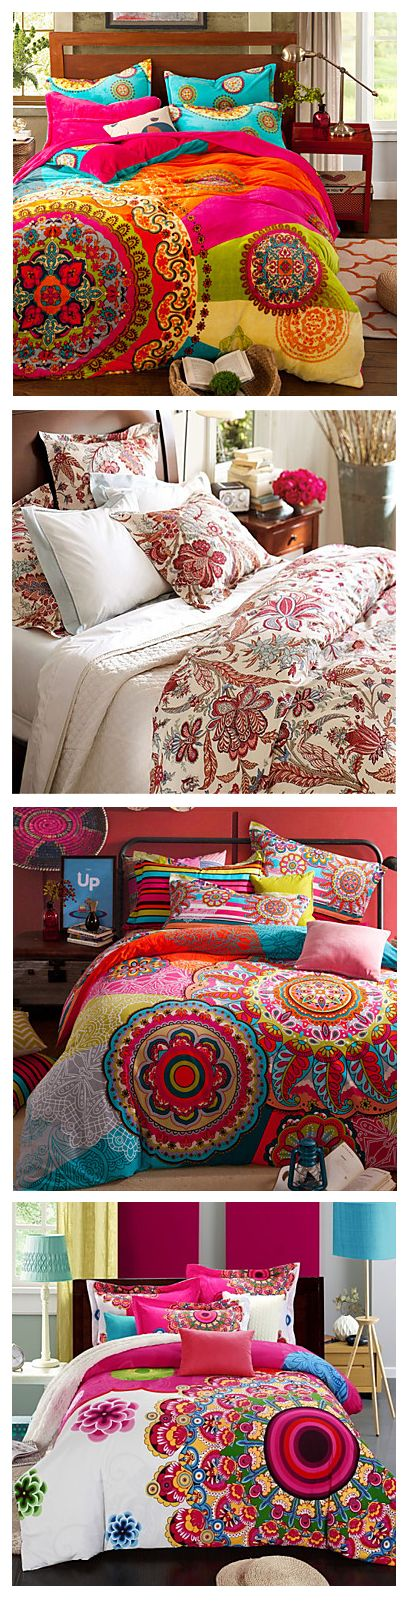 Be warm and cozy this winter with these duvet covers from LightInTheBox! Check here, we have many patterns!